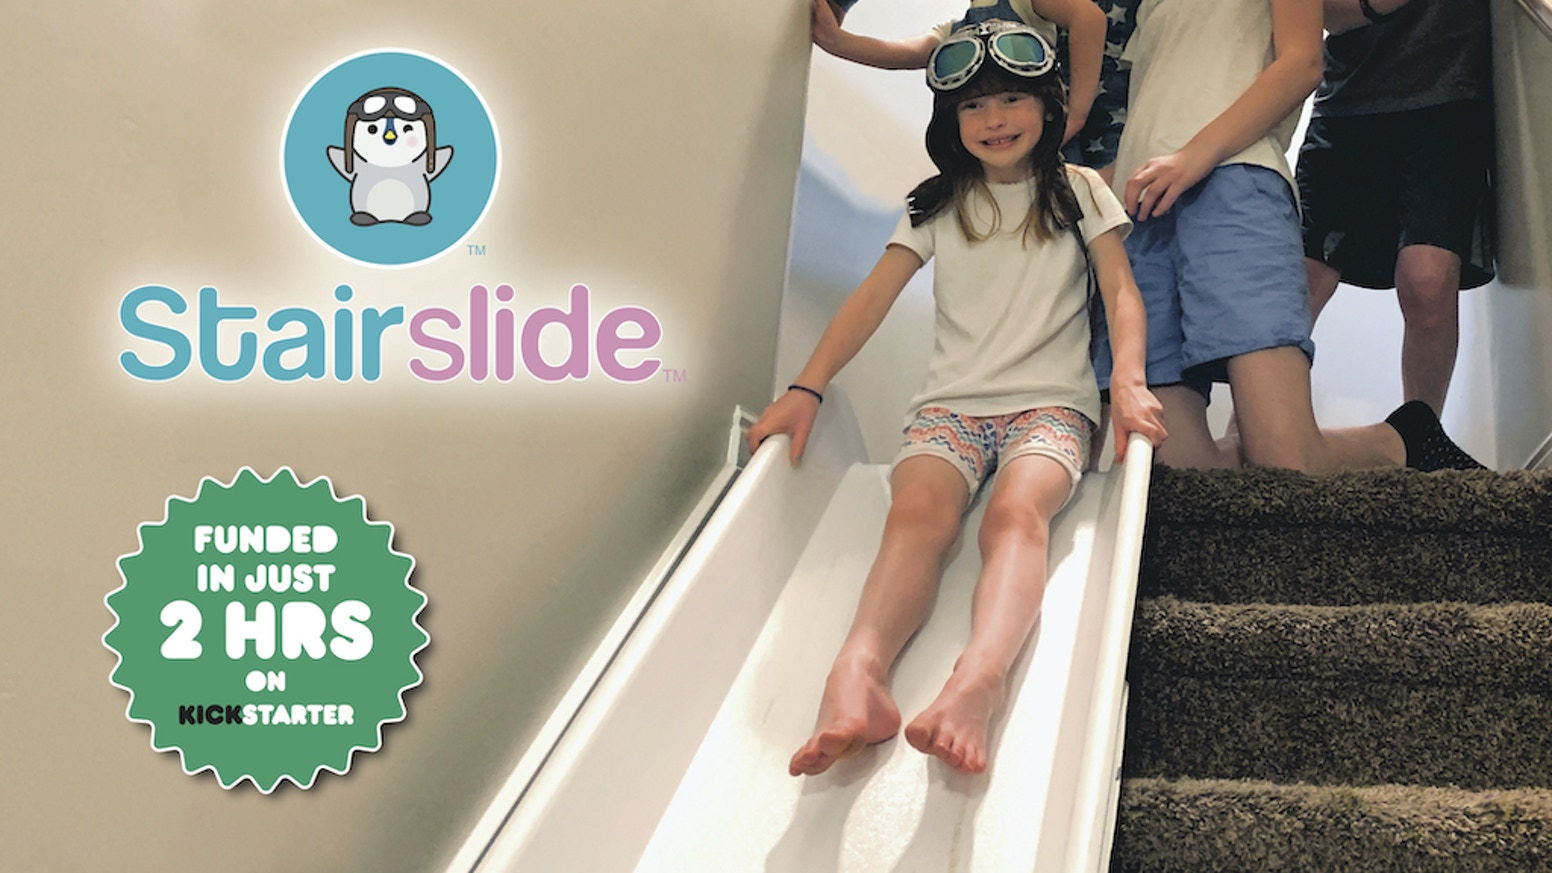 Stairslide Indoor Slide For Stairs By Jacob Webb Kickstarter